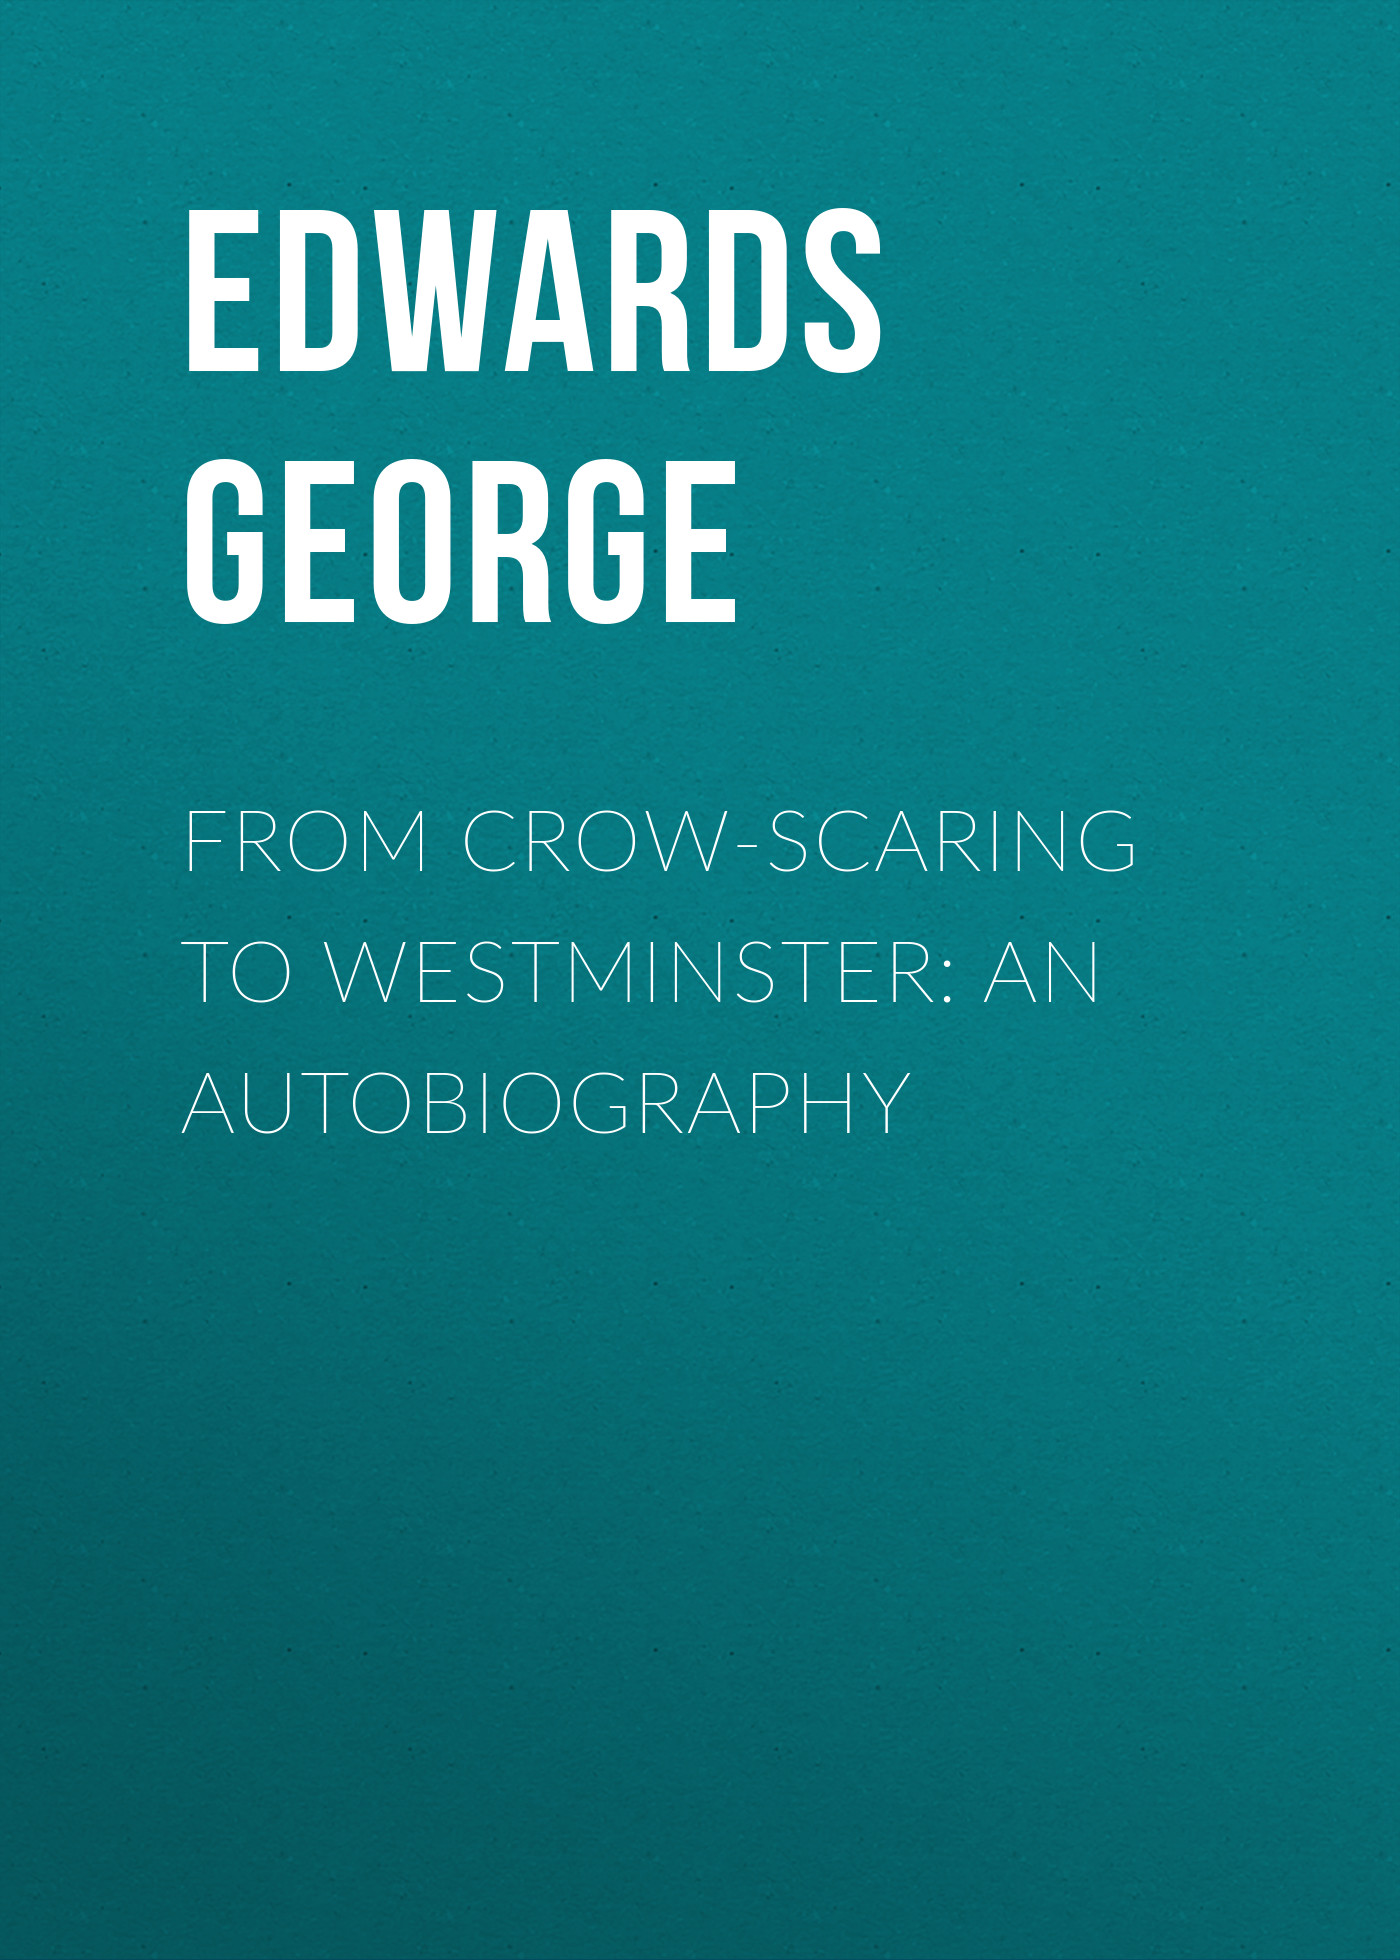 Edwards George From Crow-Scaring to Westminster: An Autobiography something like an autobiography